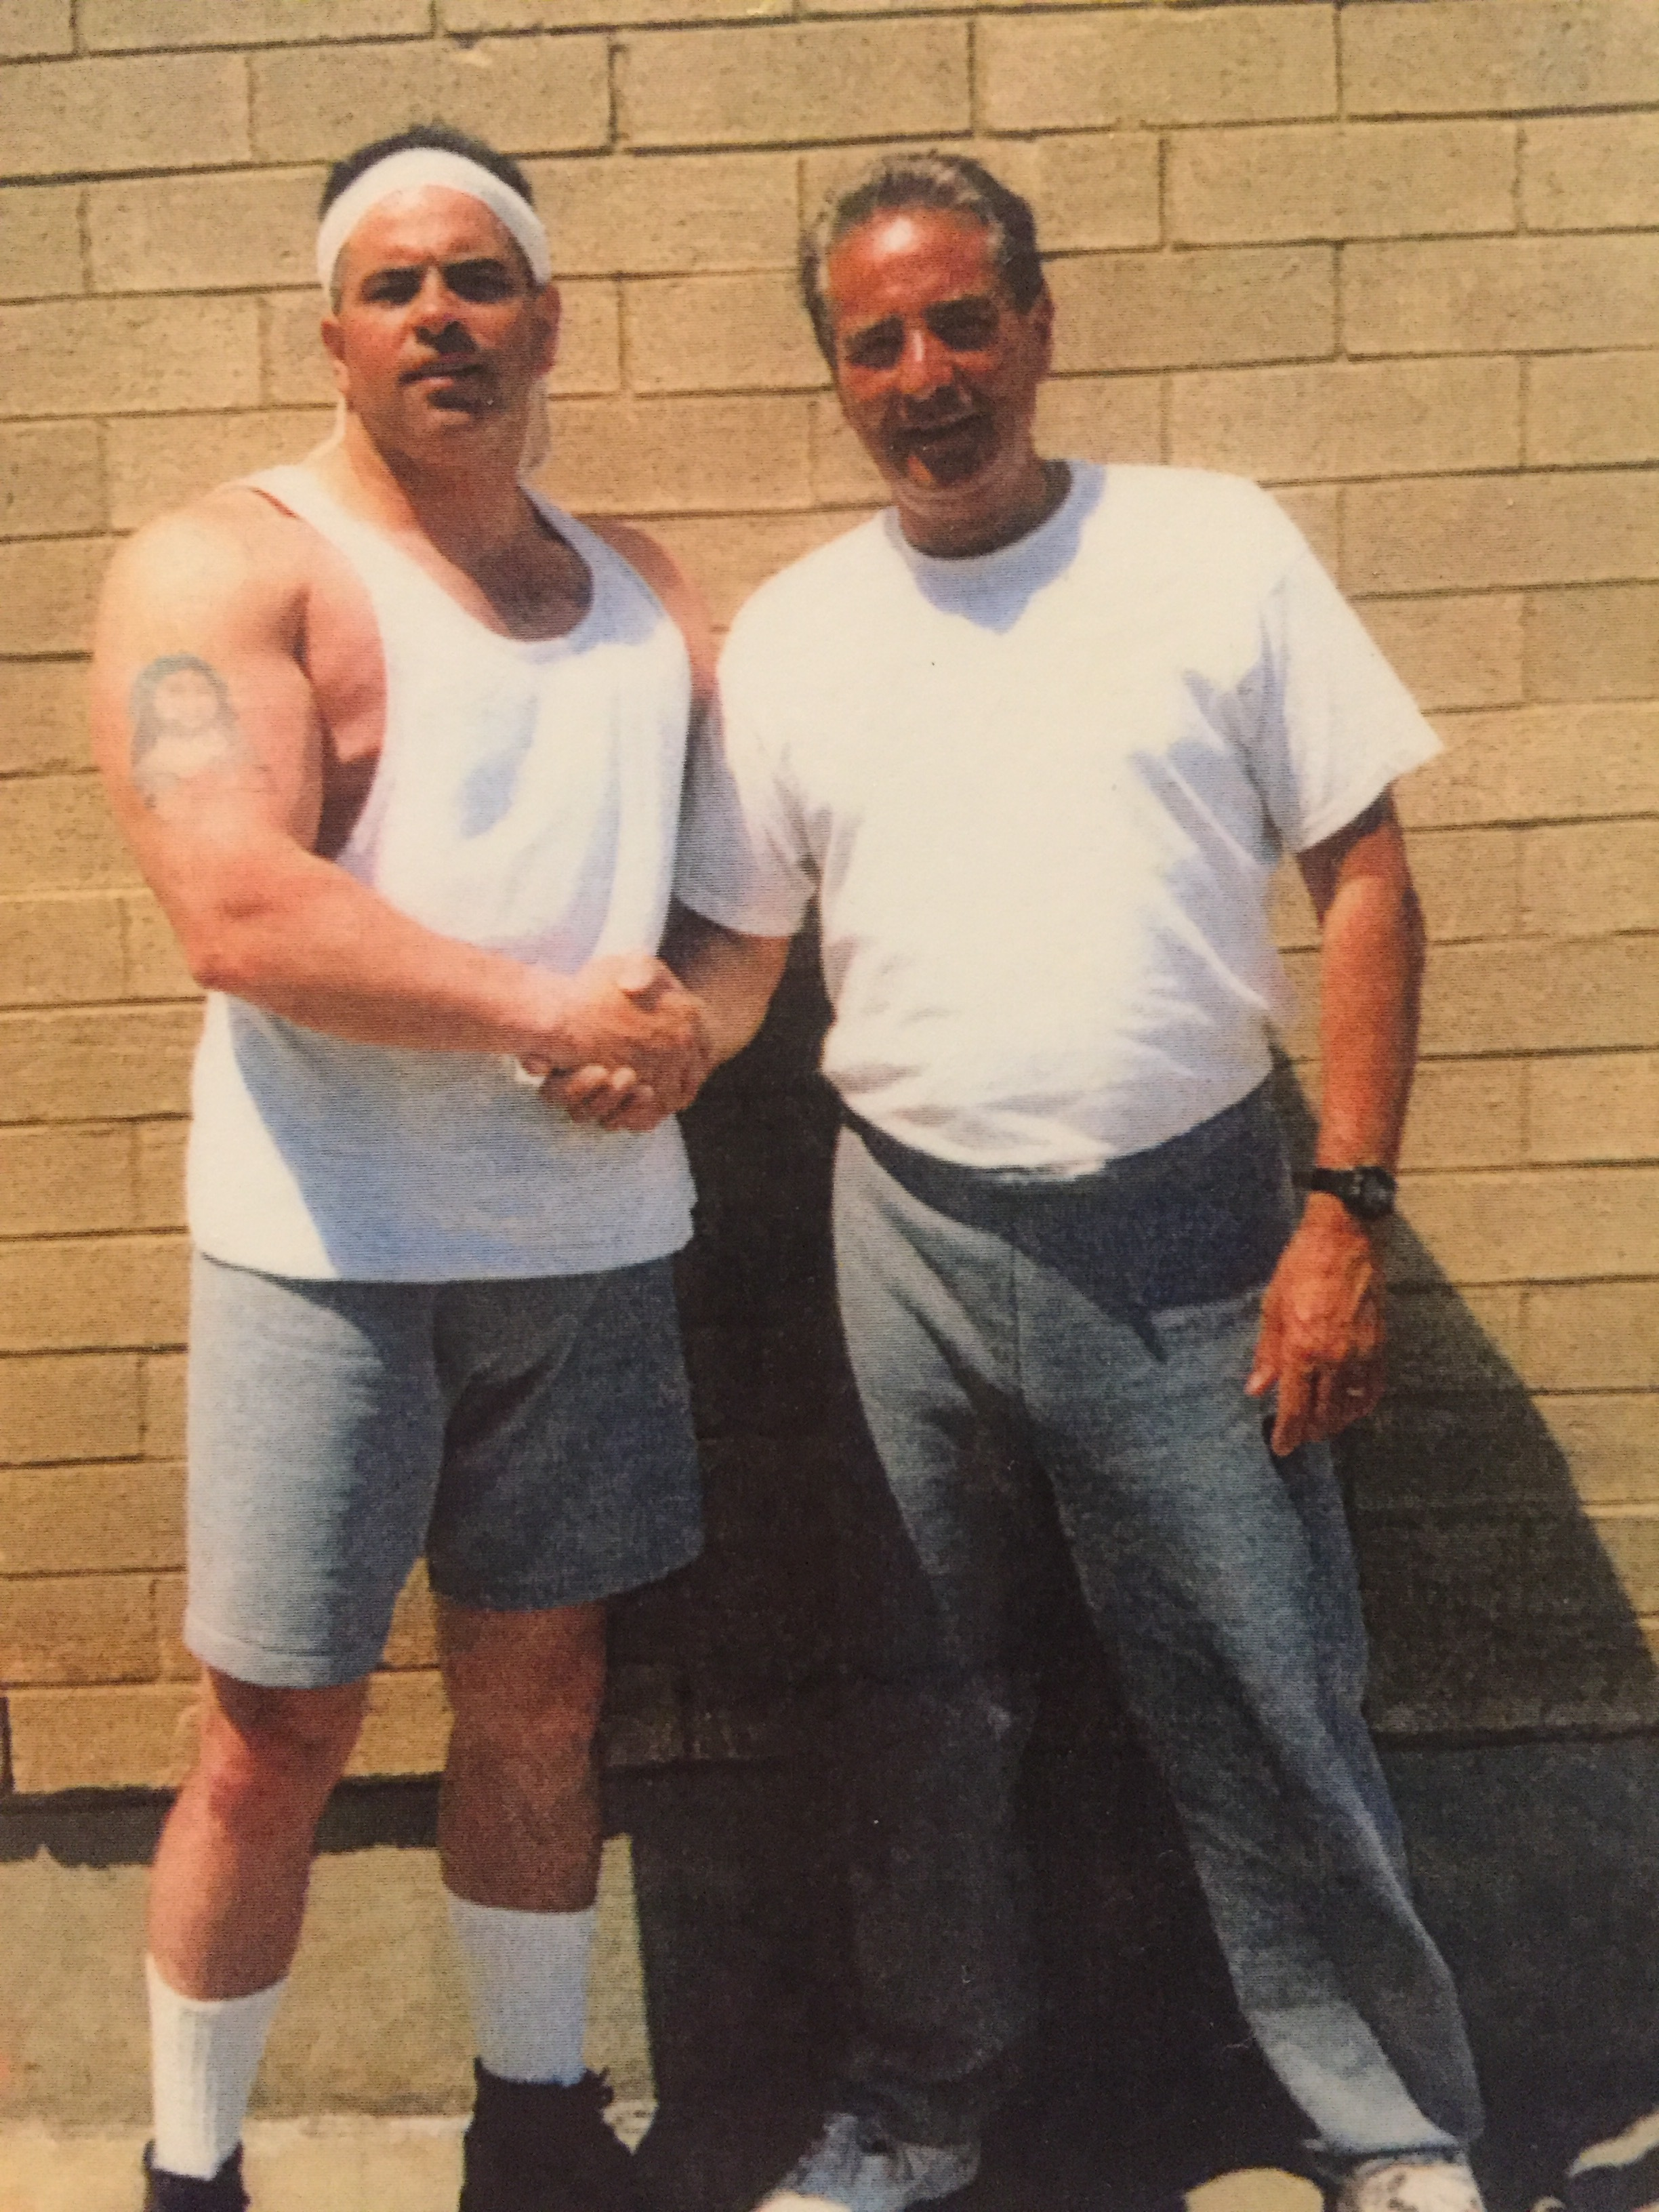 """Tony Fiore poses with New York City crime boss John A. """"Junior"""" Gotti, left, in a federal prison yard.  Courtesy of The Providence Journal."""